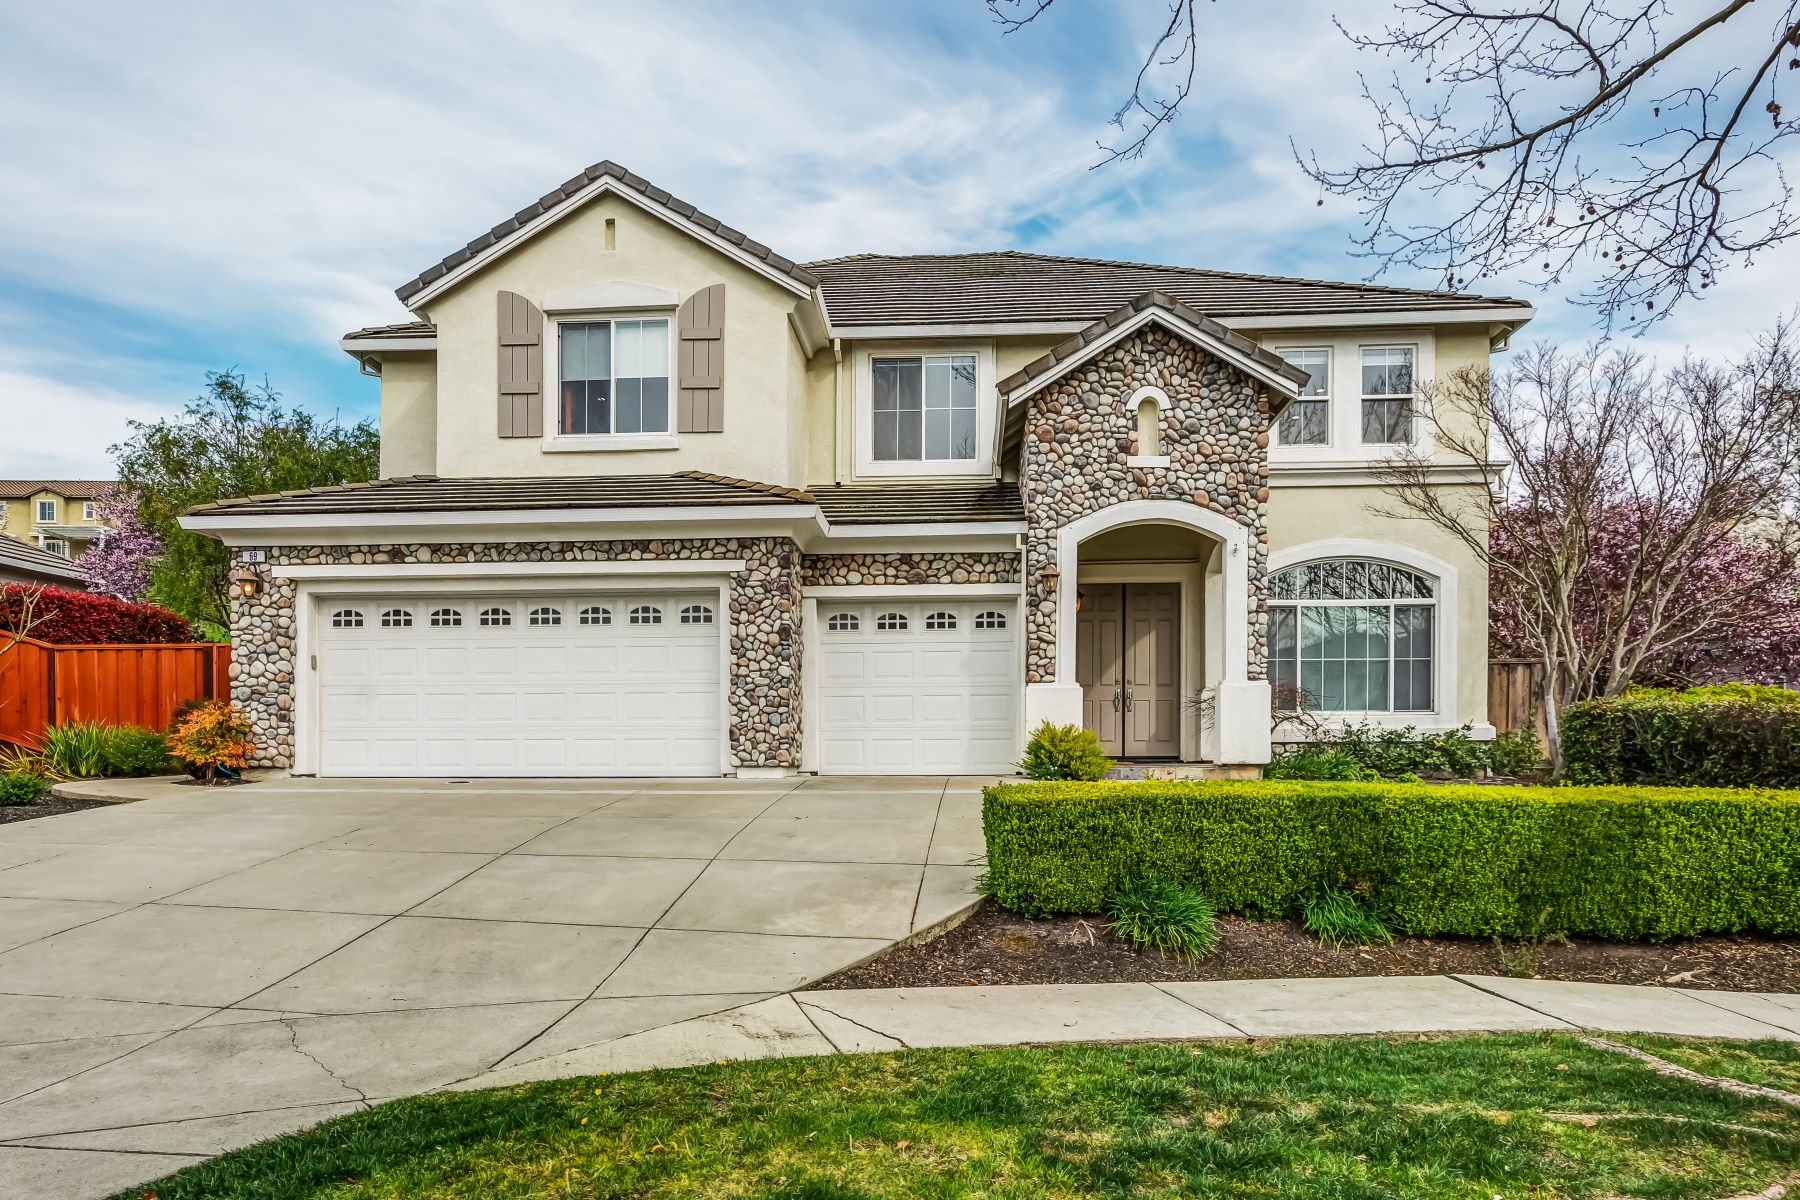 Single Family Homes for Sale at 69 Shelterwood Drive, Danville, CA 94506 69 Shelterwood Drive Danville, California 94506 United States